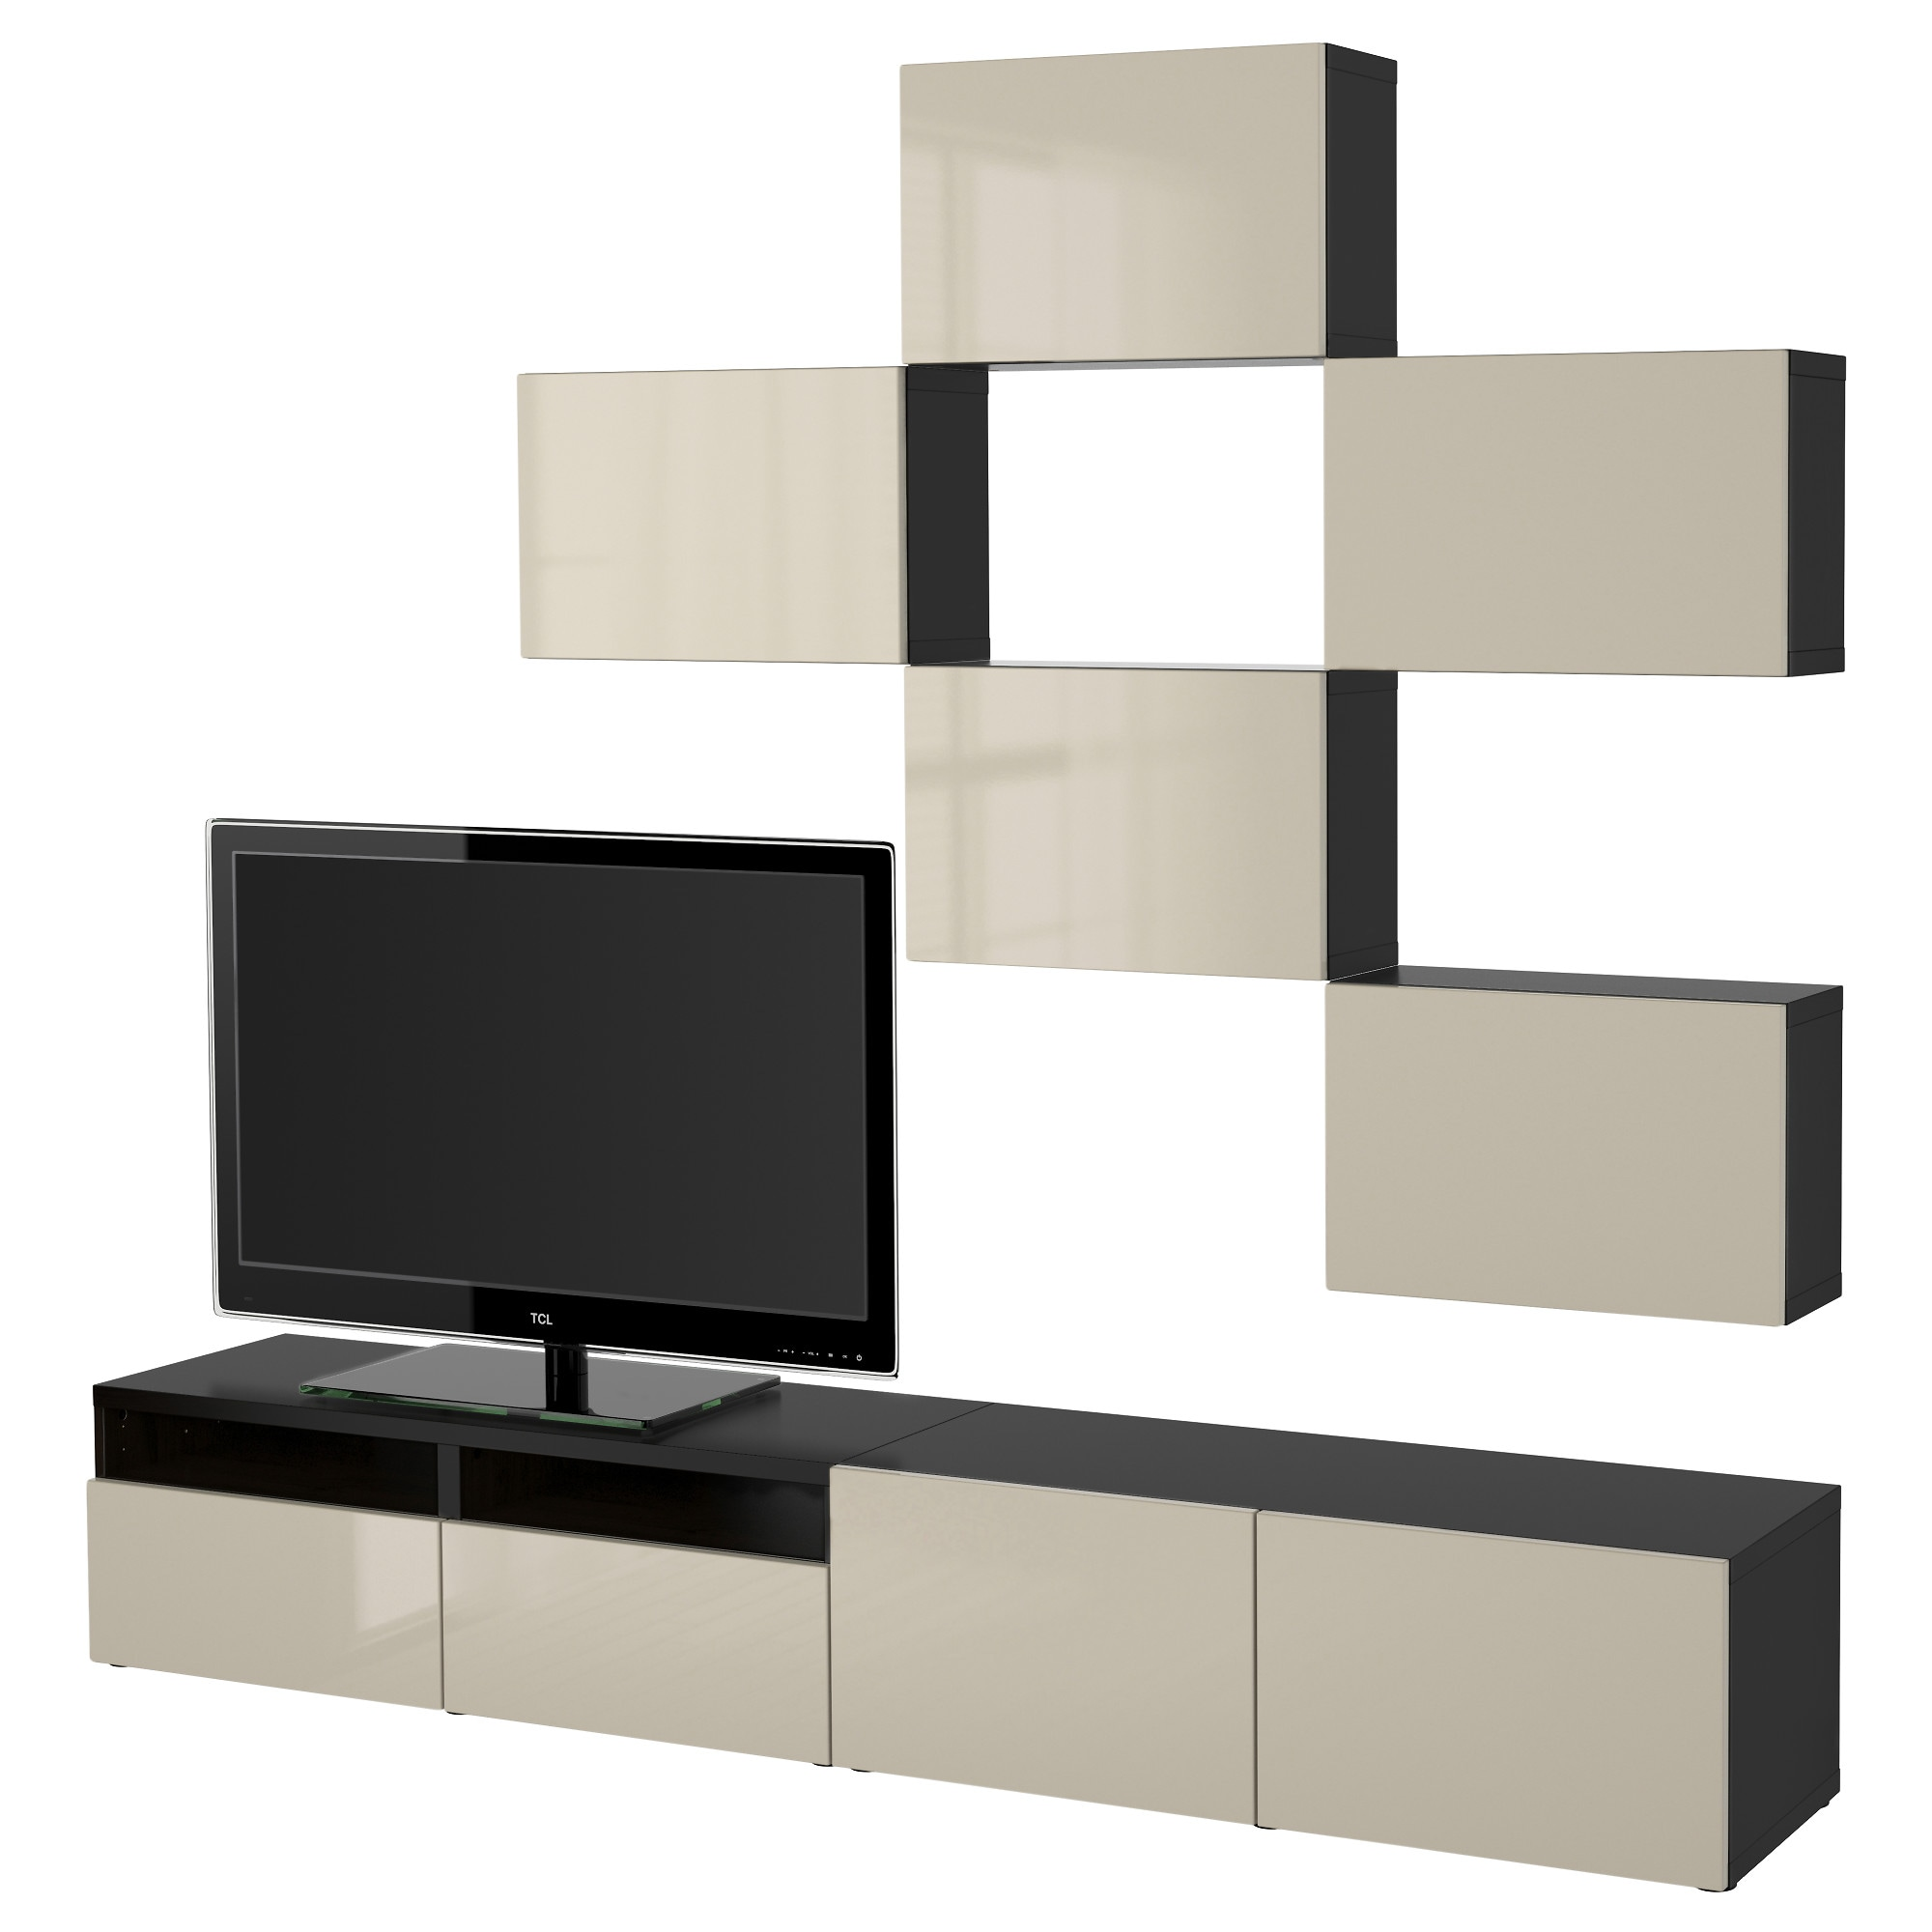 Ikea Besta Meuble Tv - Best Tv Storage Combination Black Brown Selsviken High Gloss [mjhdah]https://i.pinimg.com/originals/a2/c6/b5/a2c6b5a21a6d073e746a09ba34b46a15.png